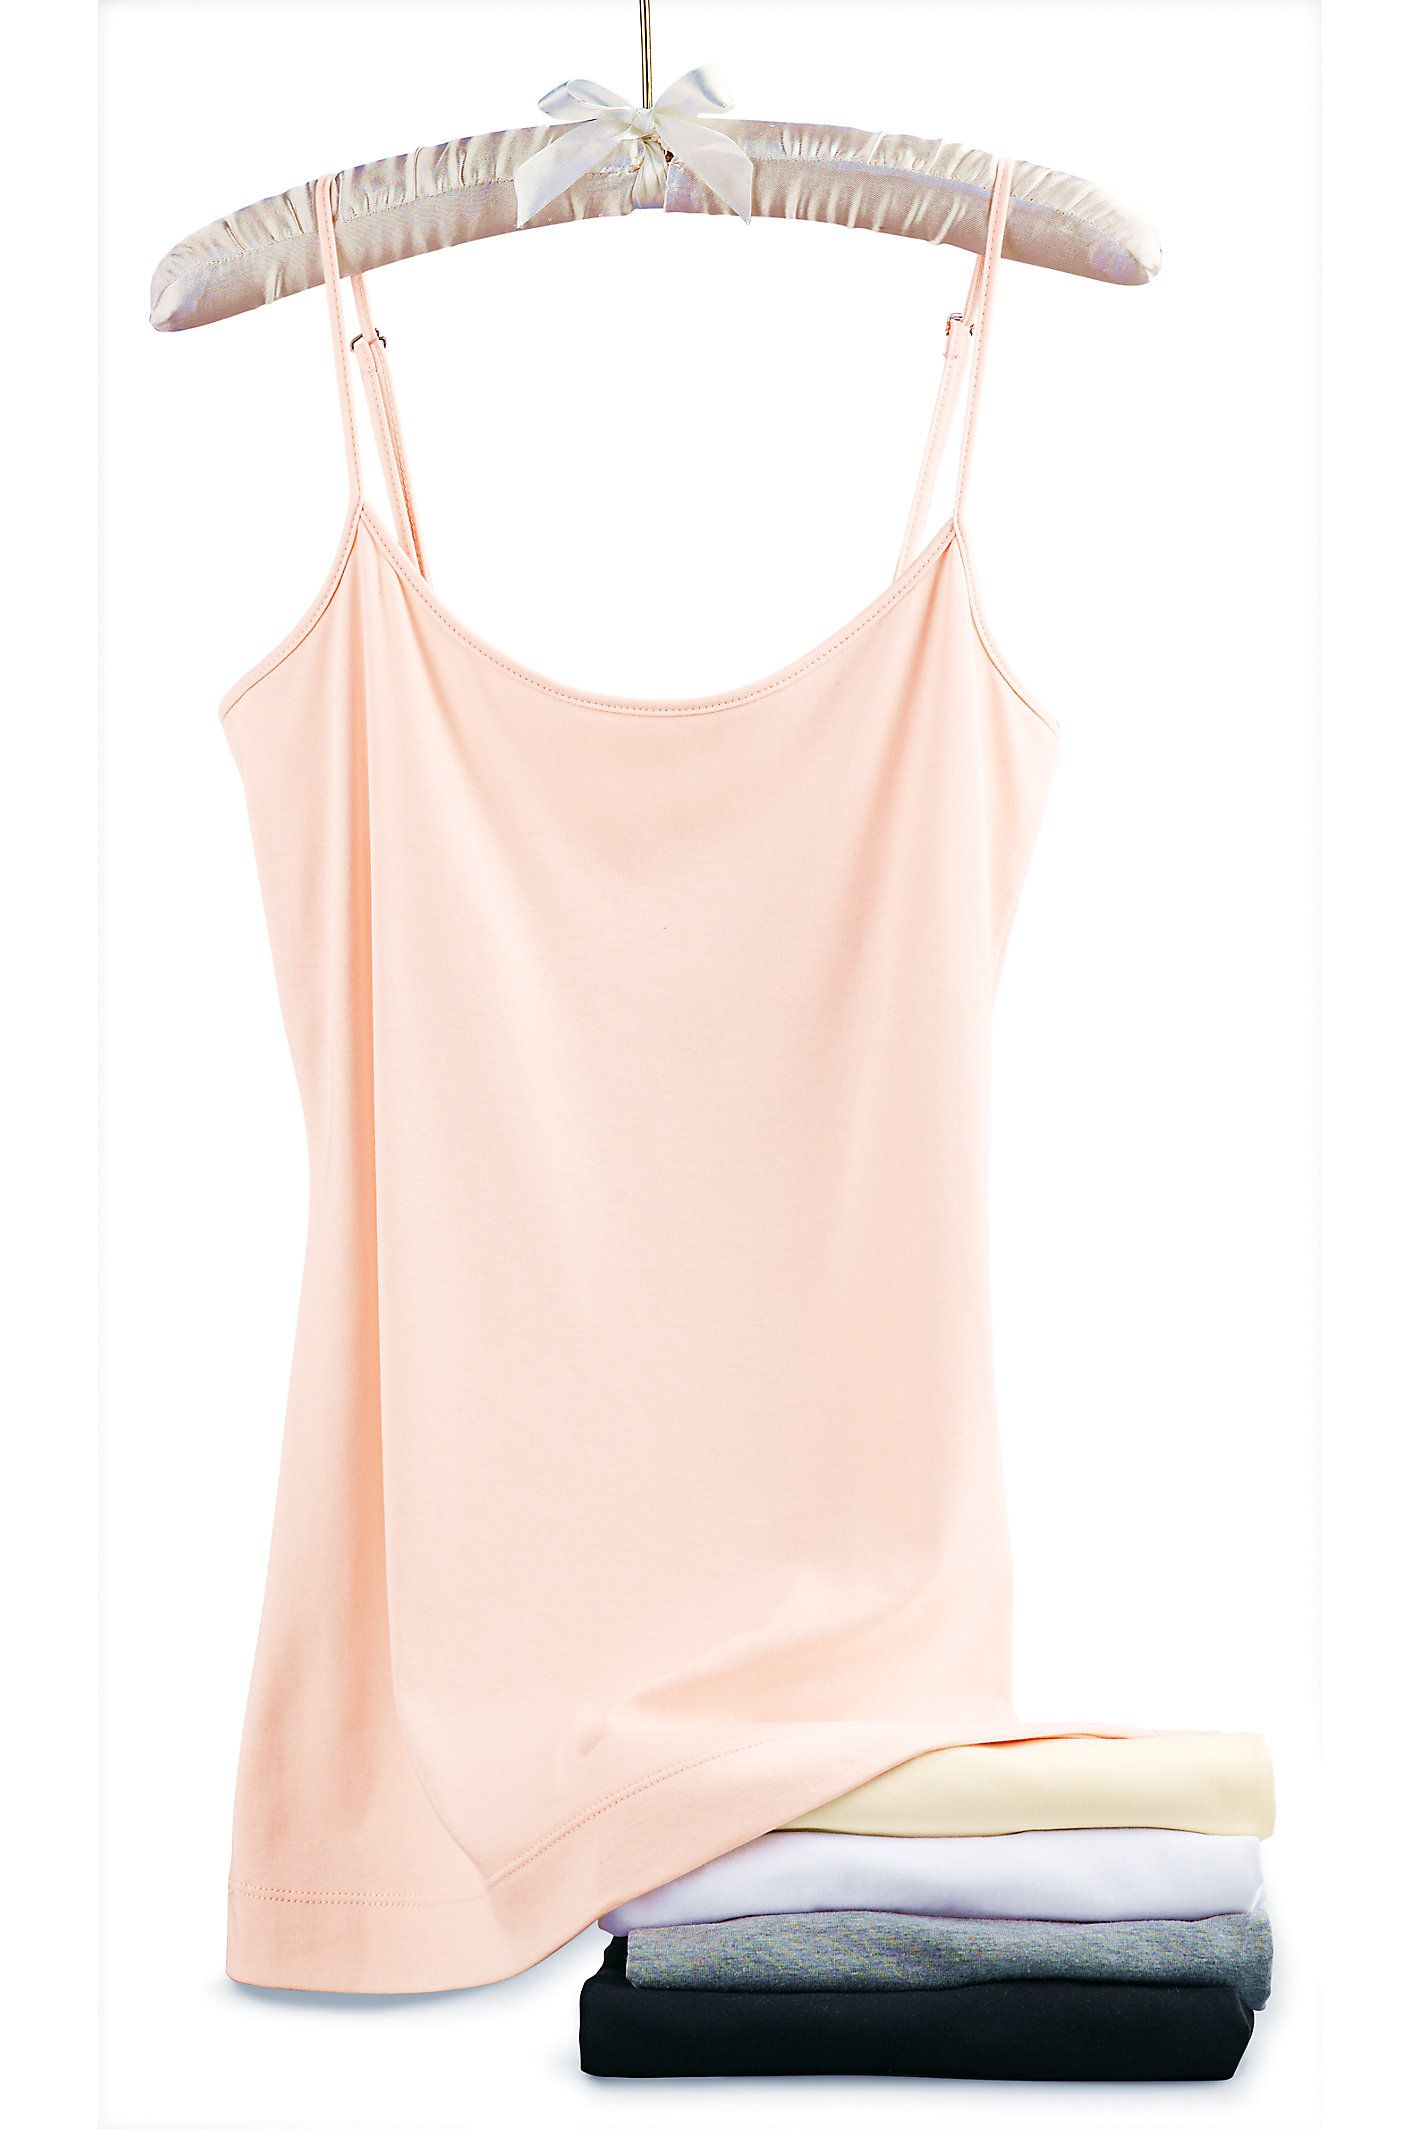 d2c6e6ab79c59 Our Shelf Bra Cami is the perfect layering piece for any summer look and  they hold up nicely!